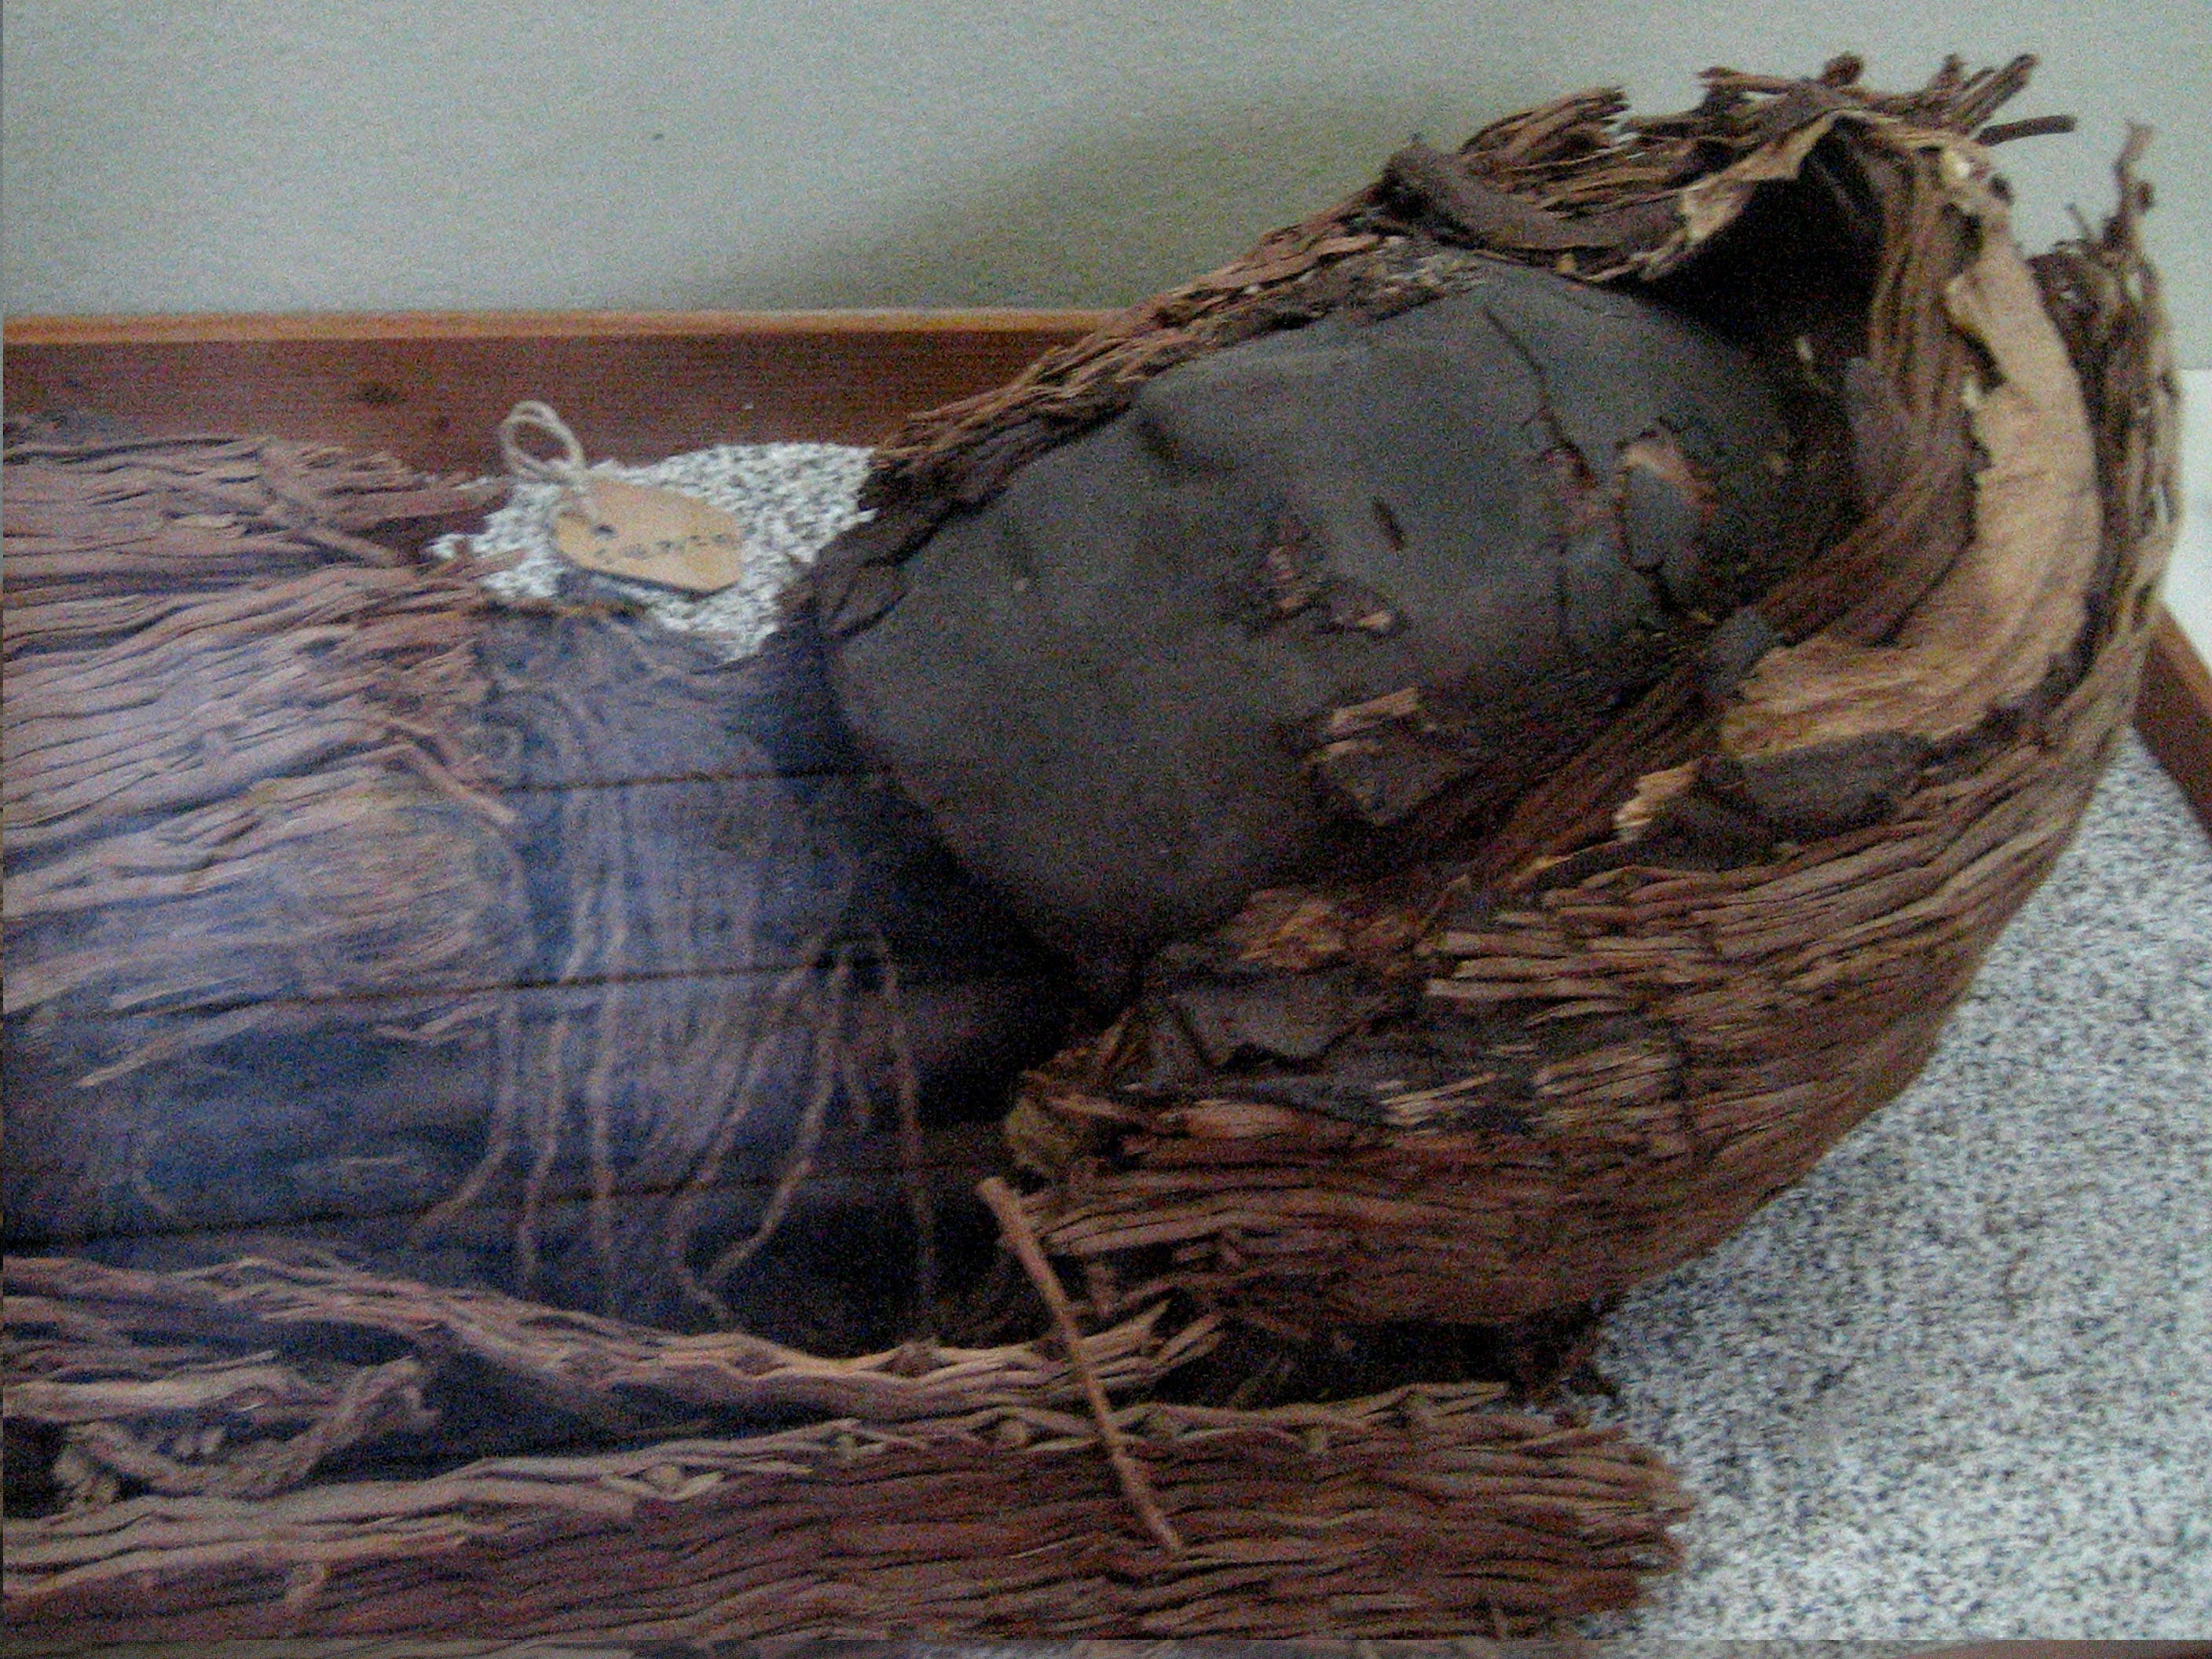 A mummy of the Chinchorro people, with blackened skin laying in a woven basket.